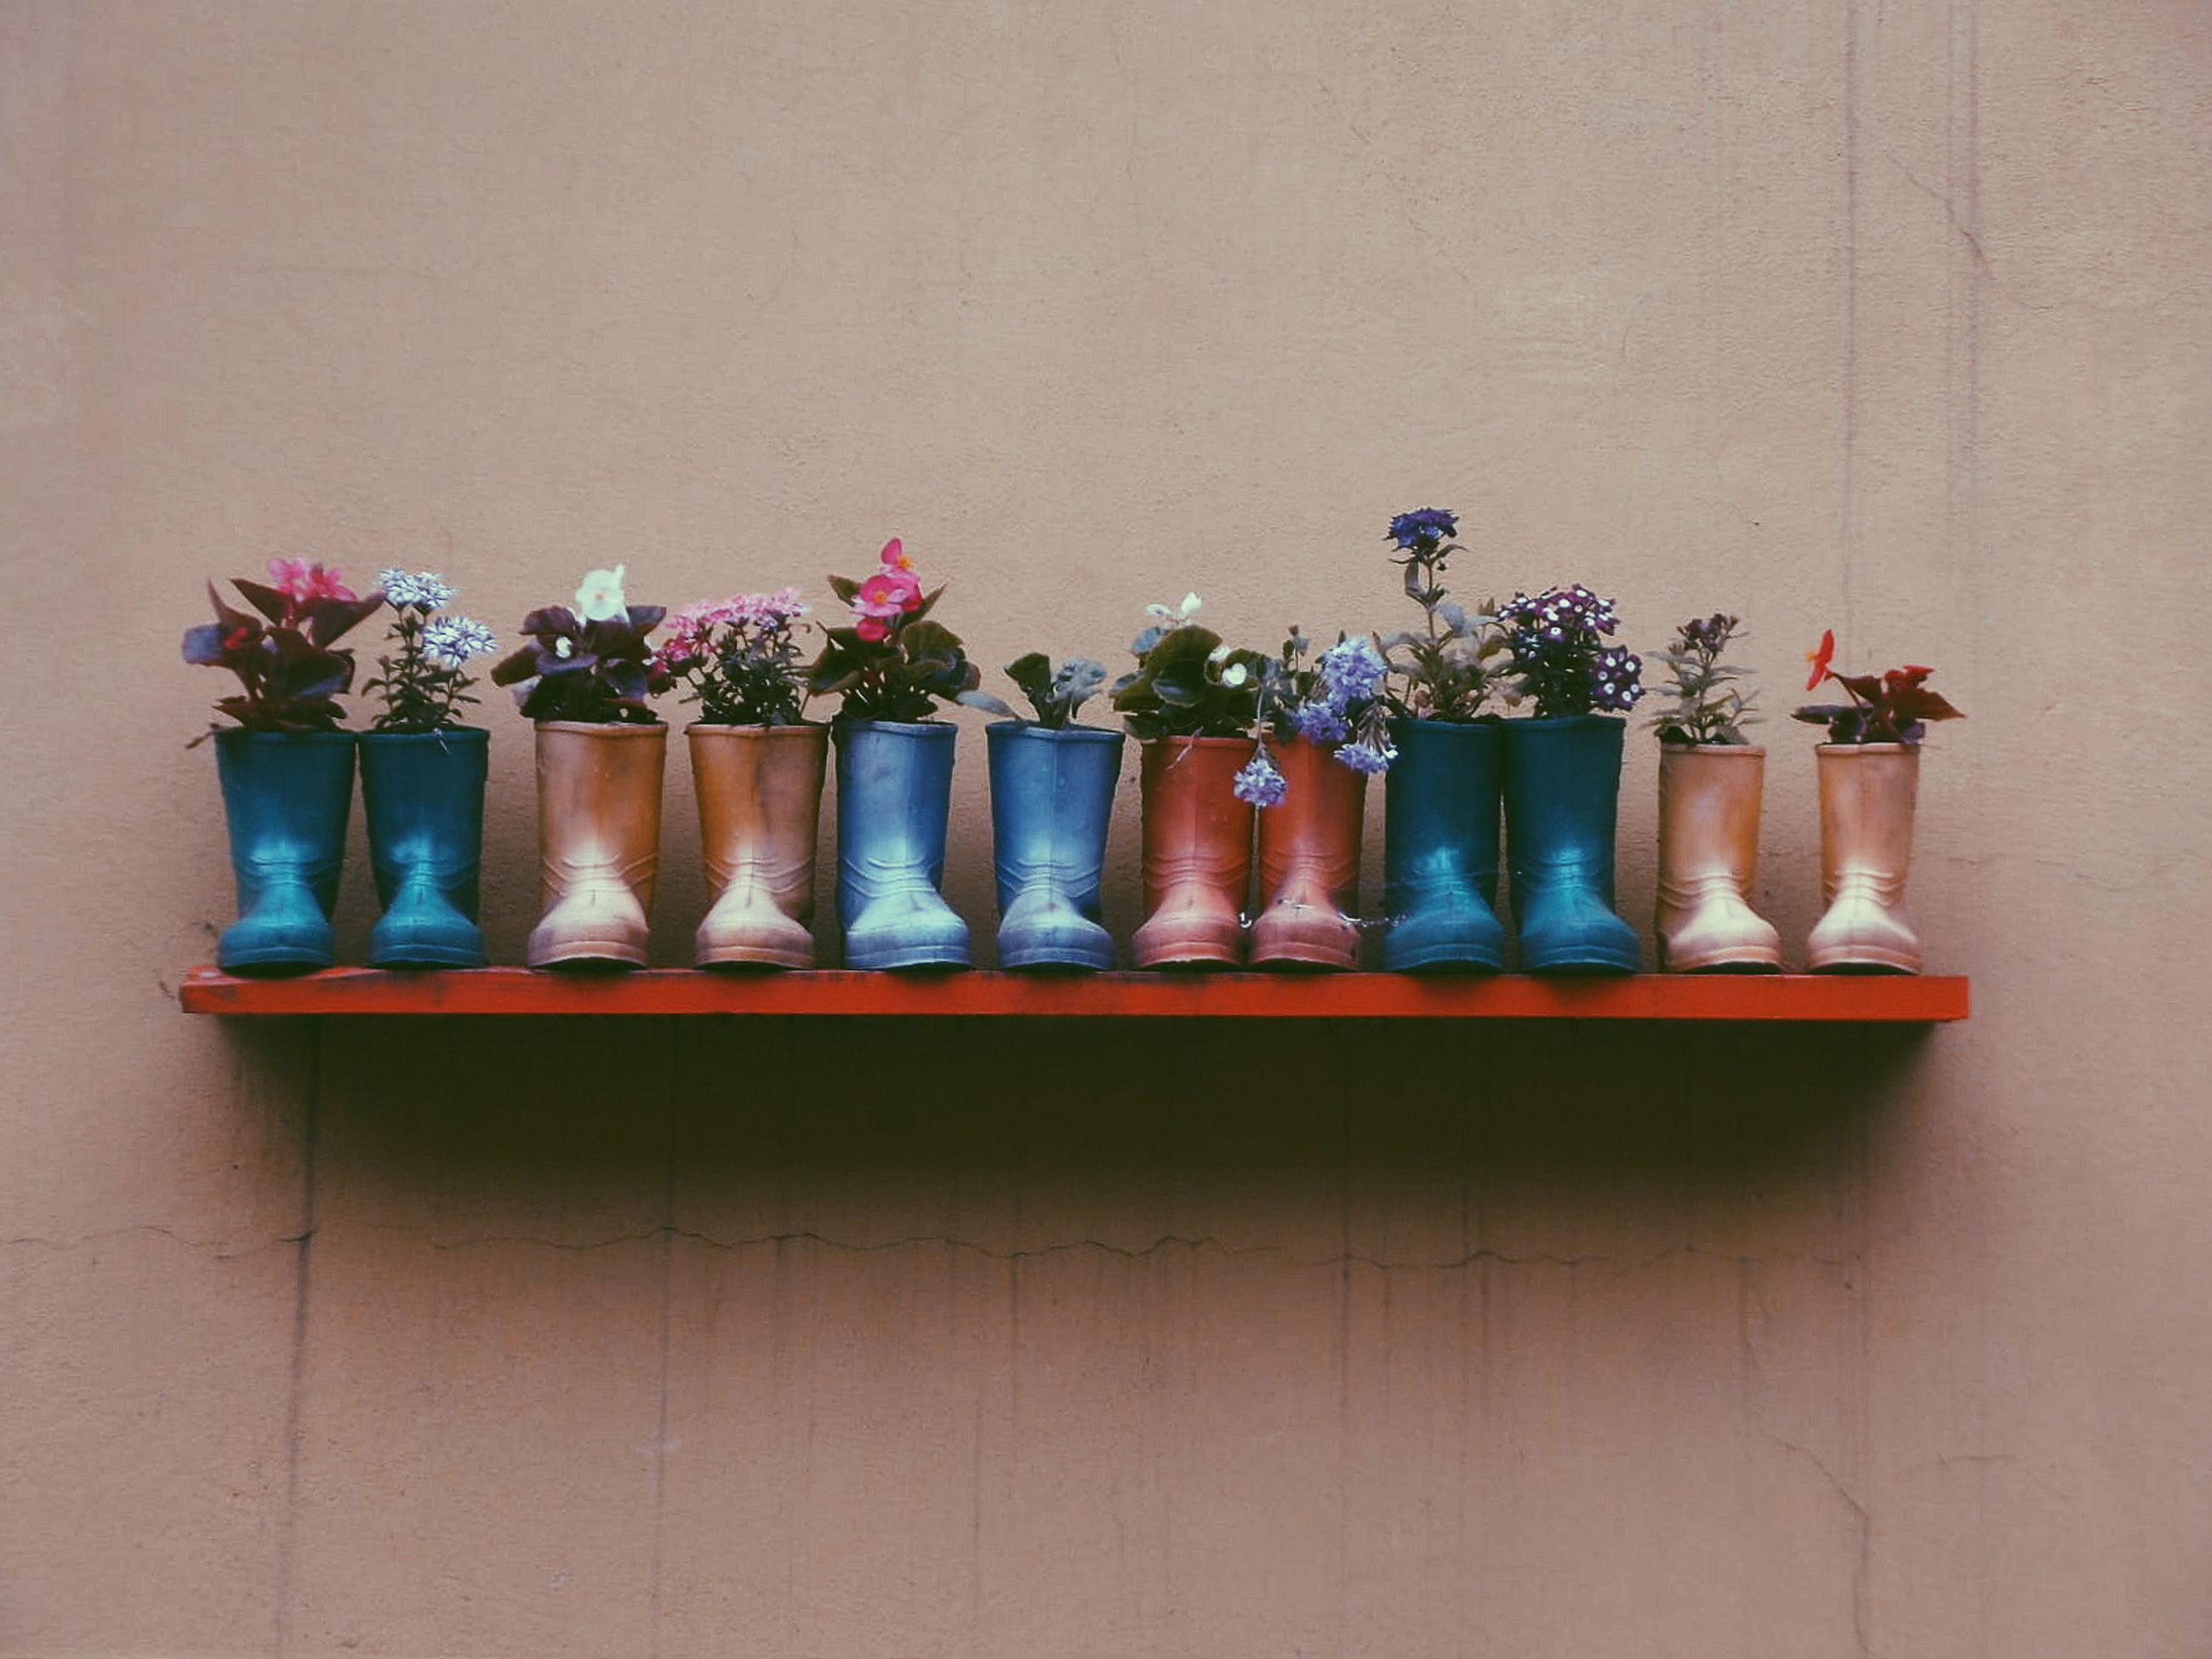 arrangement, no people, indoors, side by side, still life, shelf, variation, wood - material, vase, choice, table, wall - building feature, flowering plant, flower, plant, art and craft, close-up, multi colored, potted plant, ceramics, order